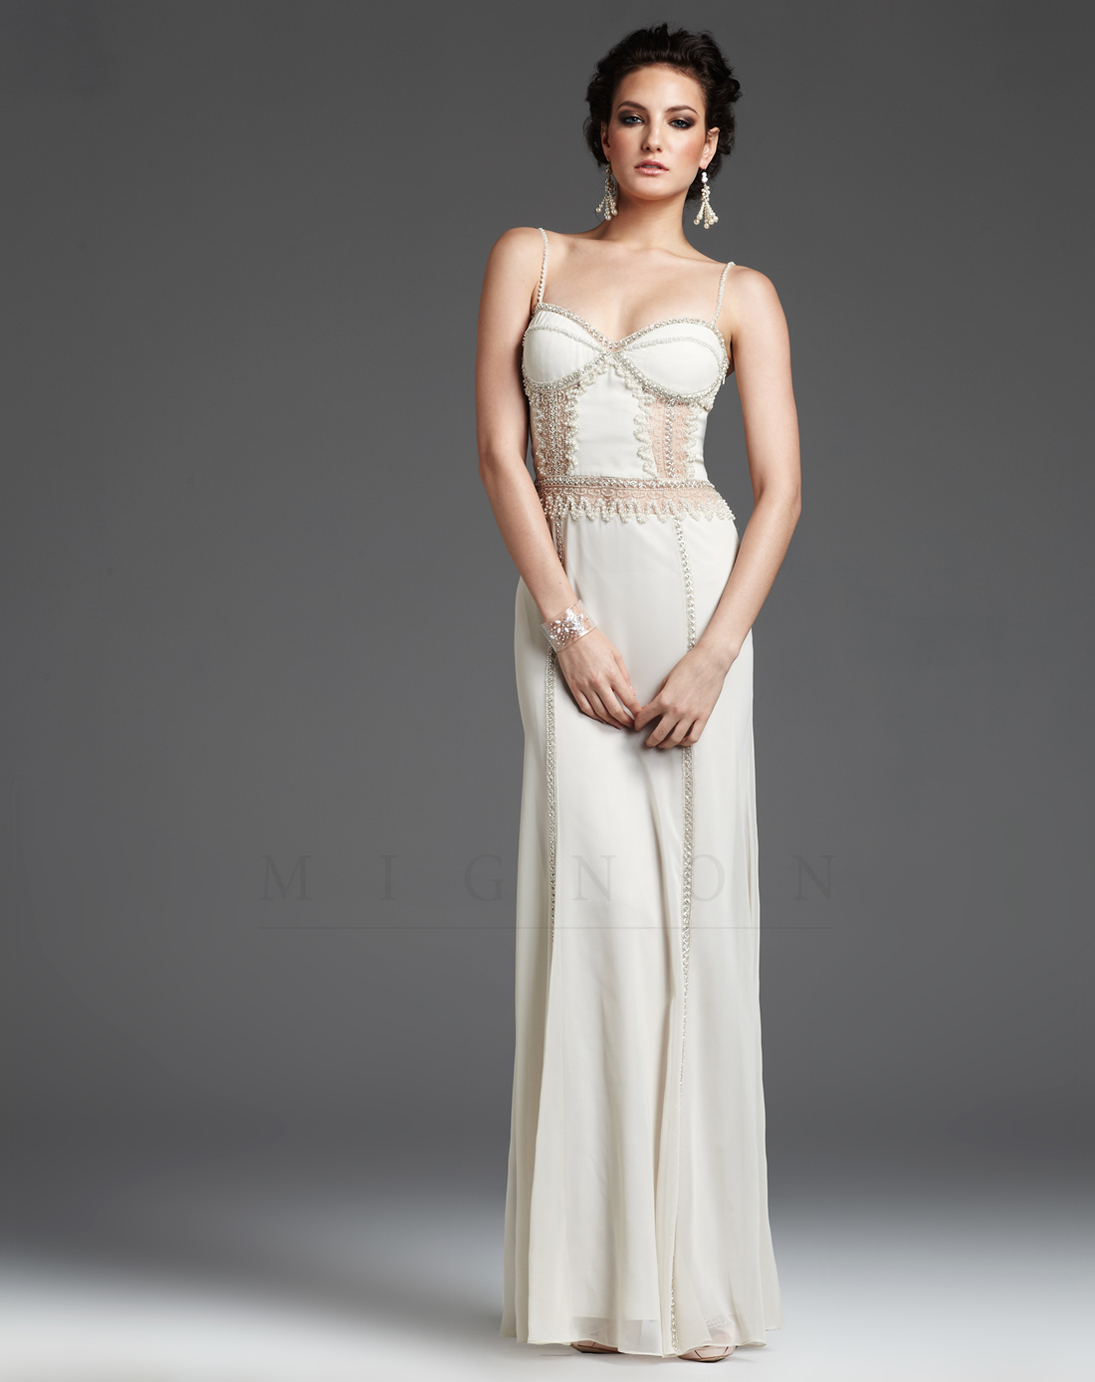 Prom Dresses - Ivory Embroidered Illusion Back Prom Dress - Unique ...